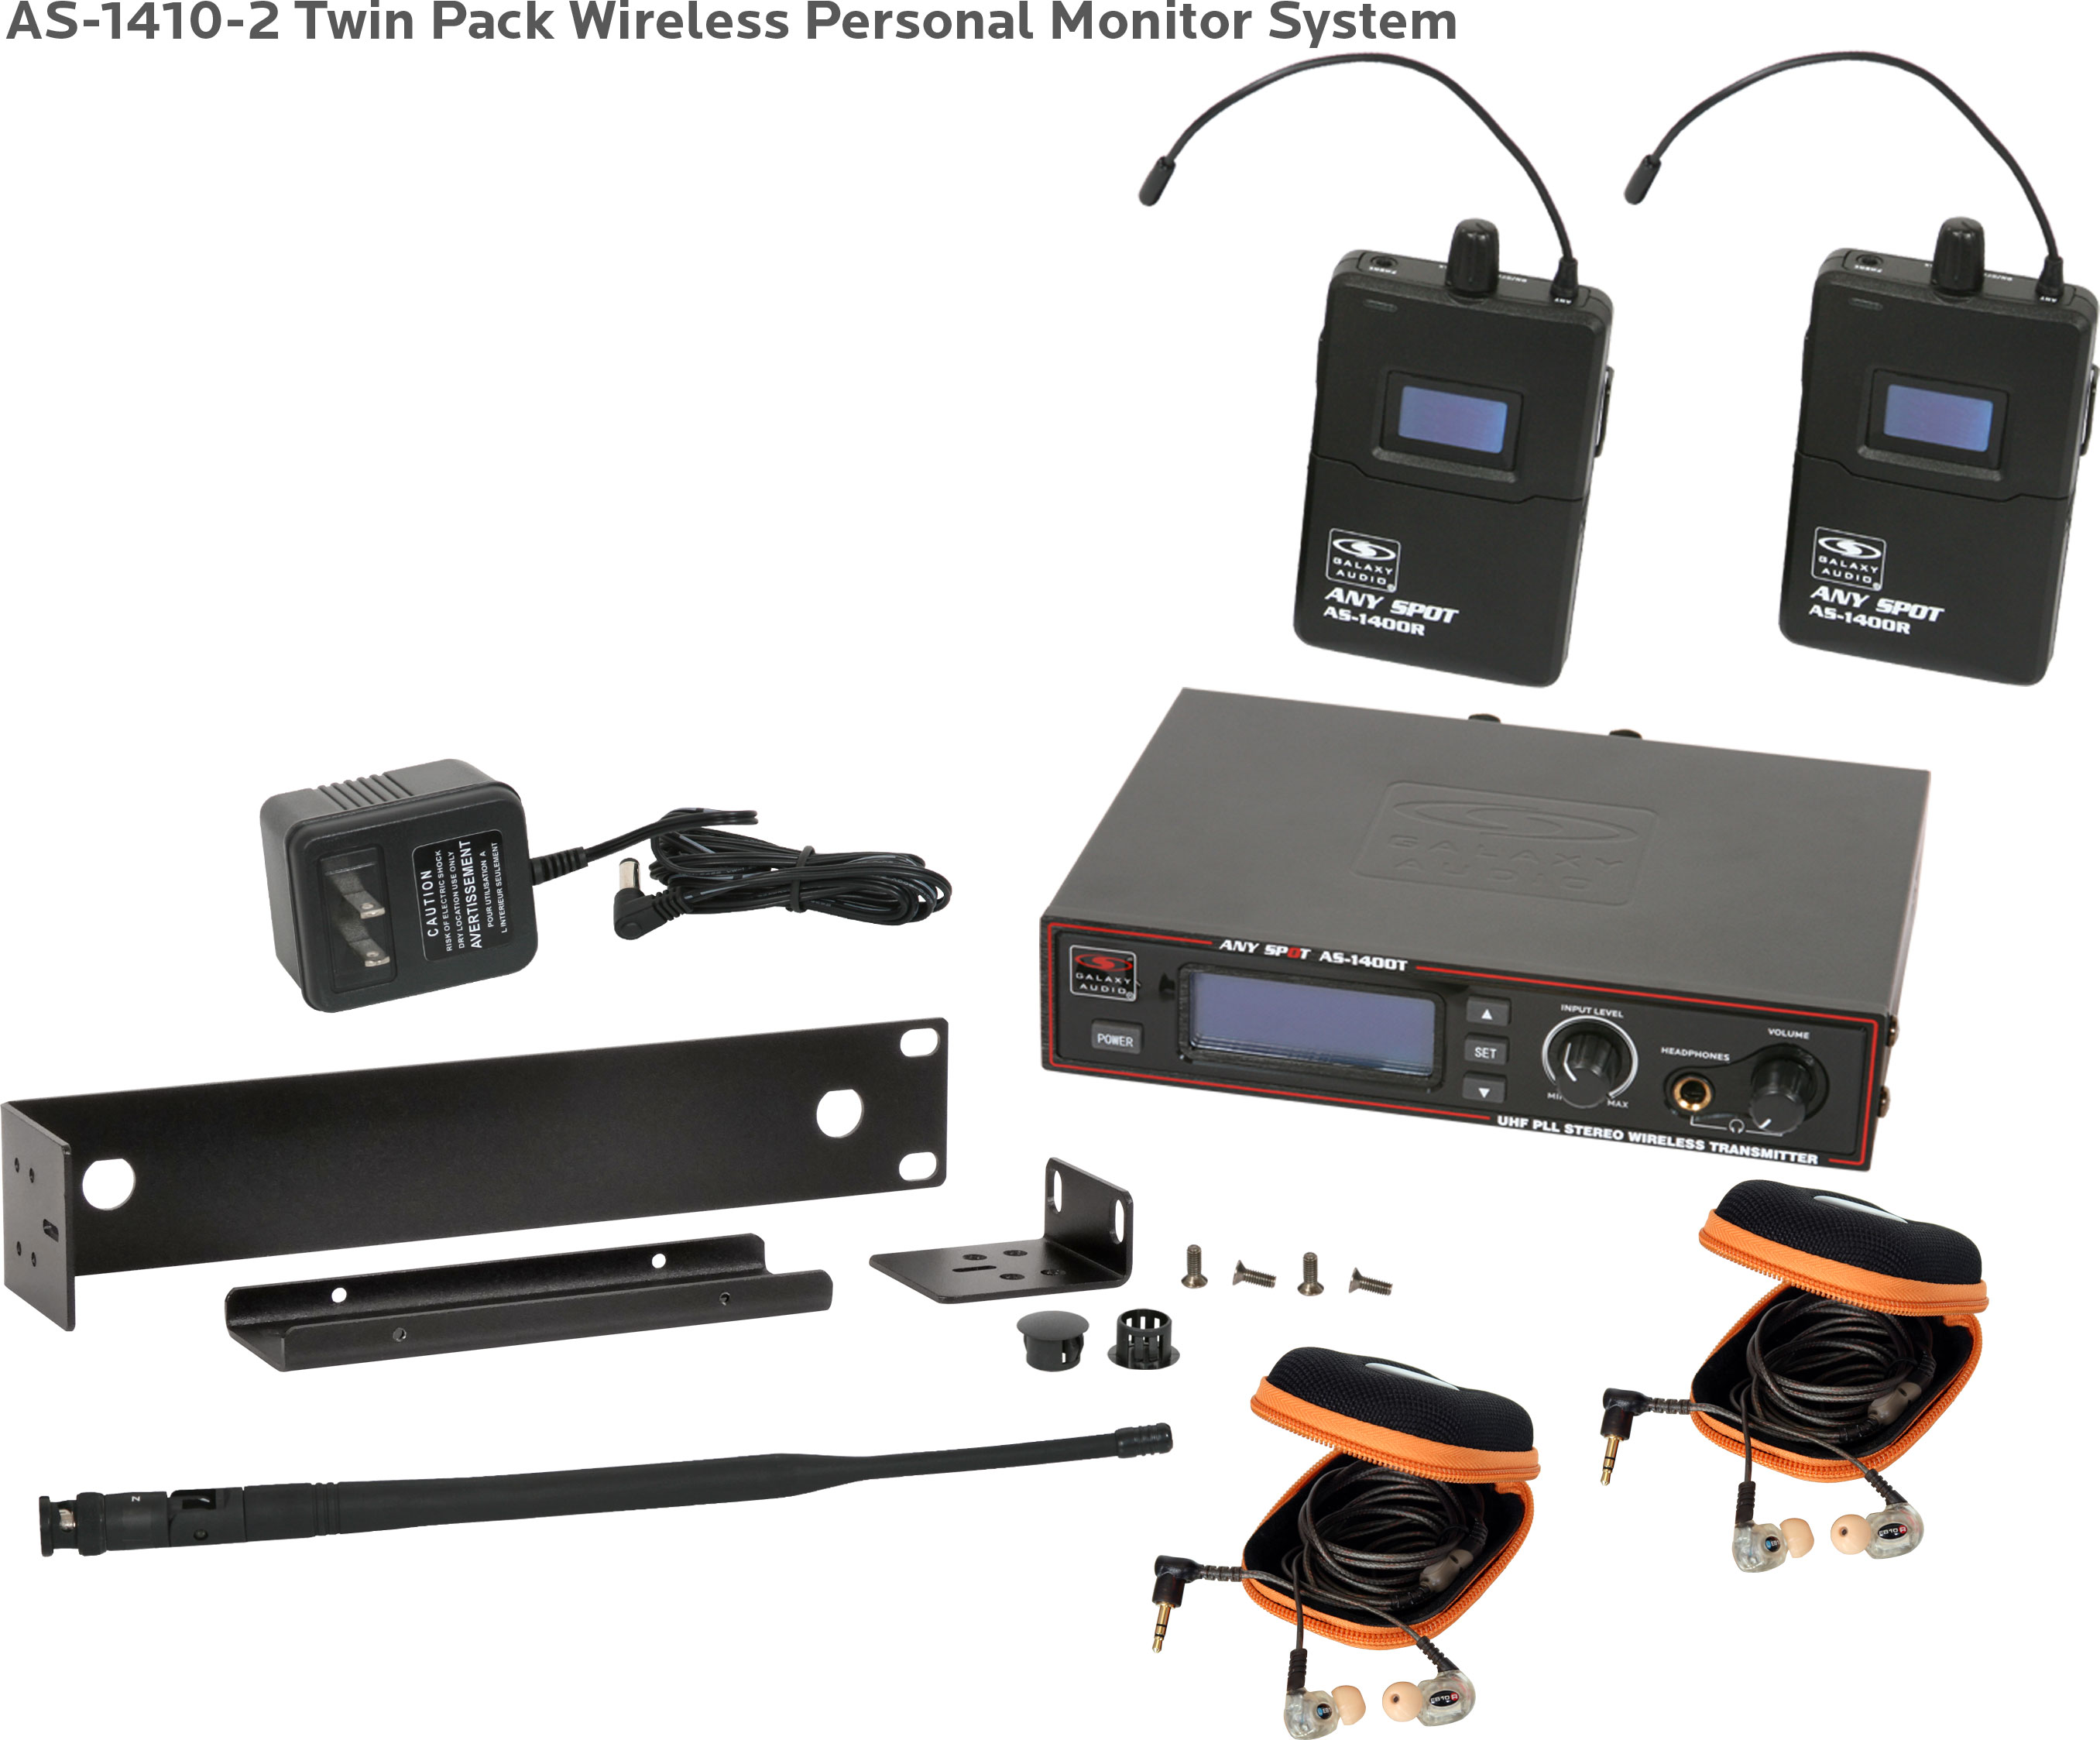 10d17f38095 AS-1410-2 Wireless In-Ear Twin Pack System with EB10 Ear Buds